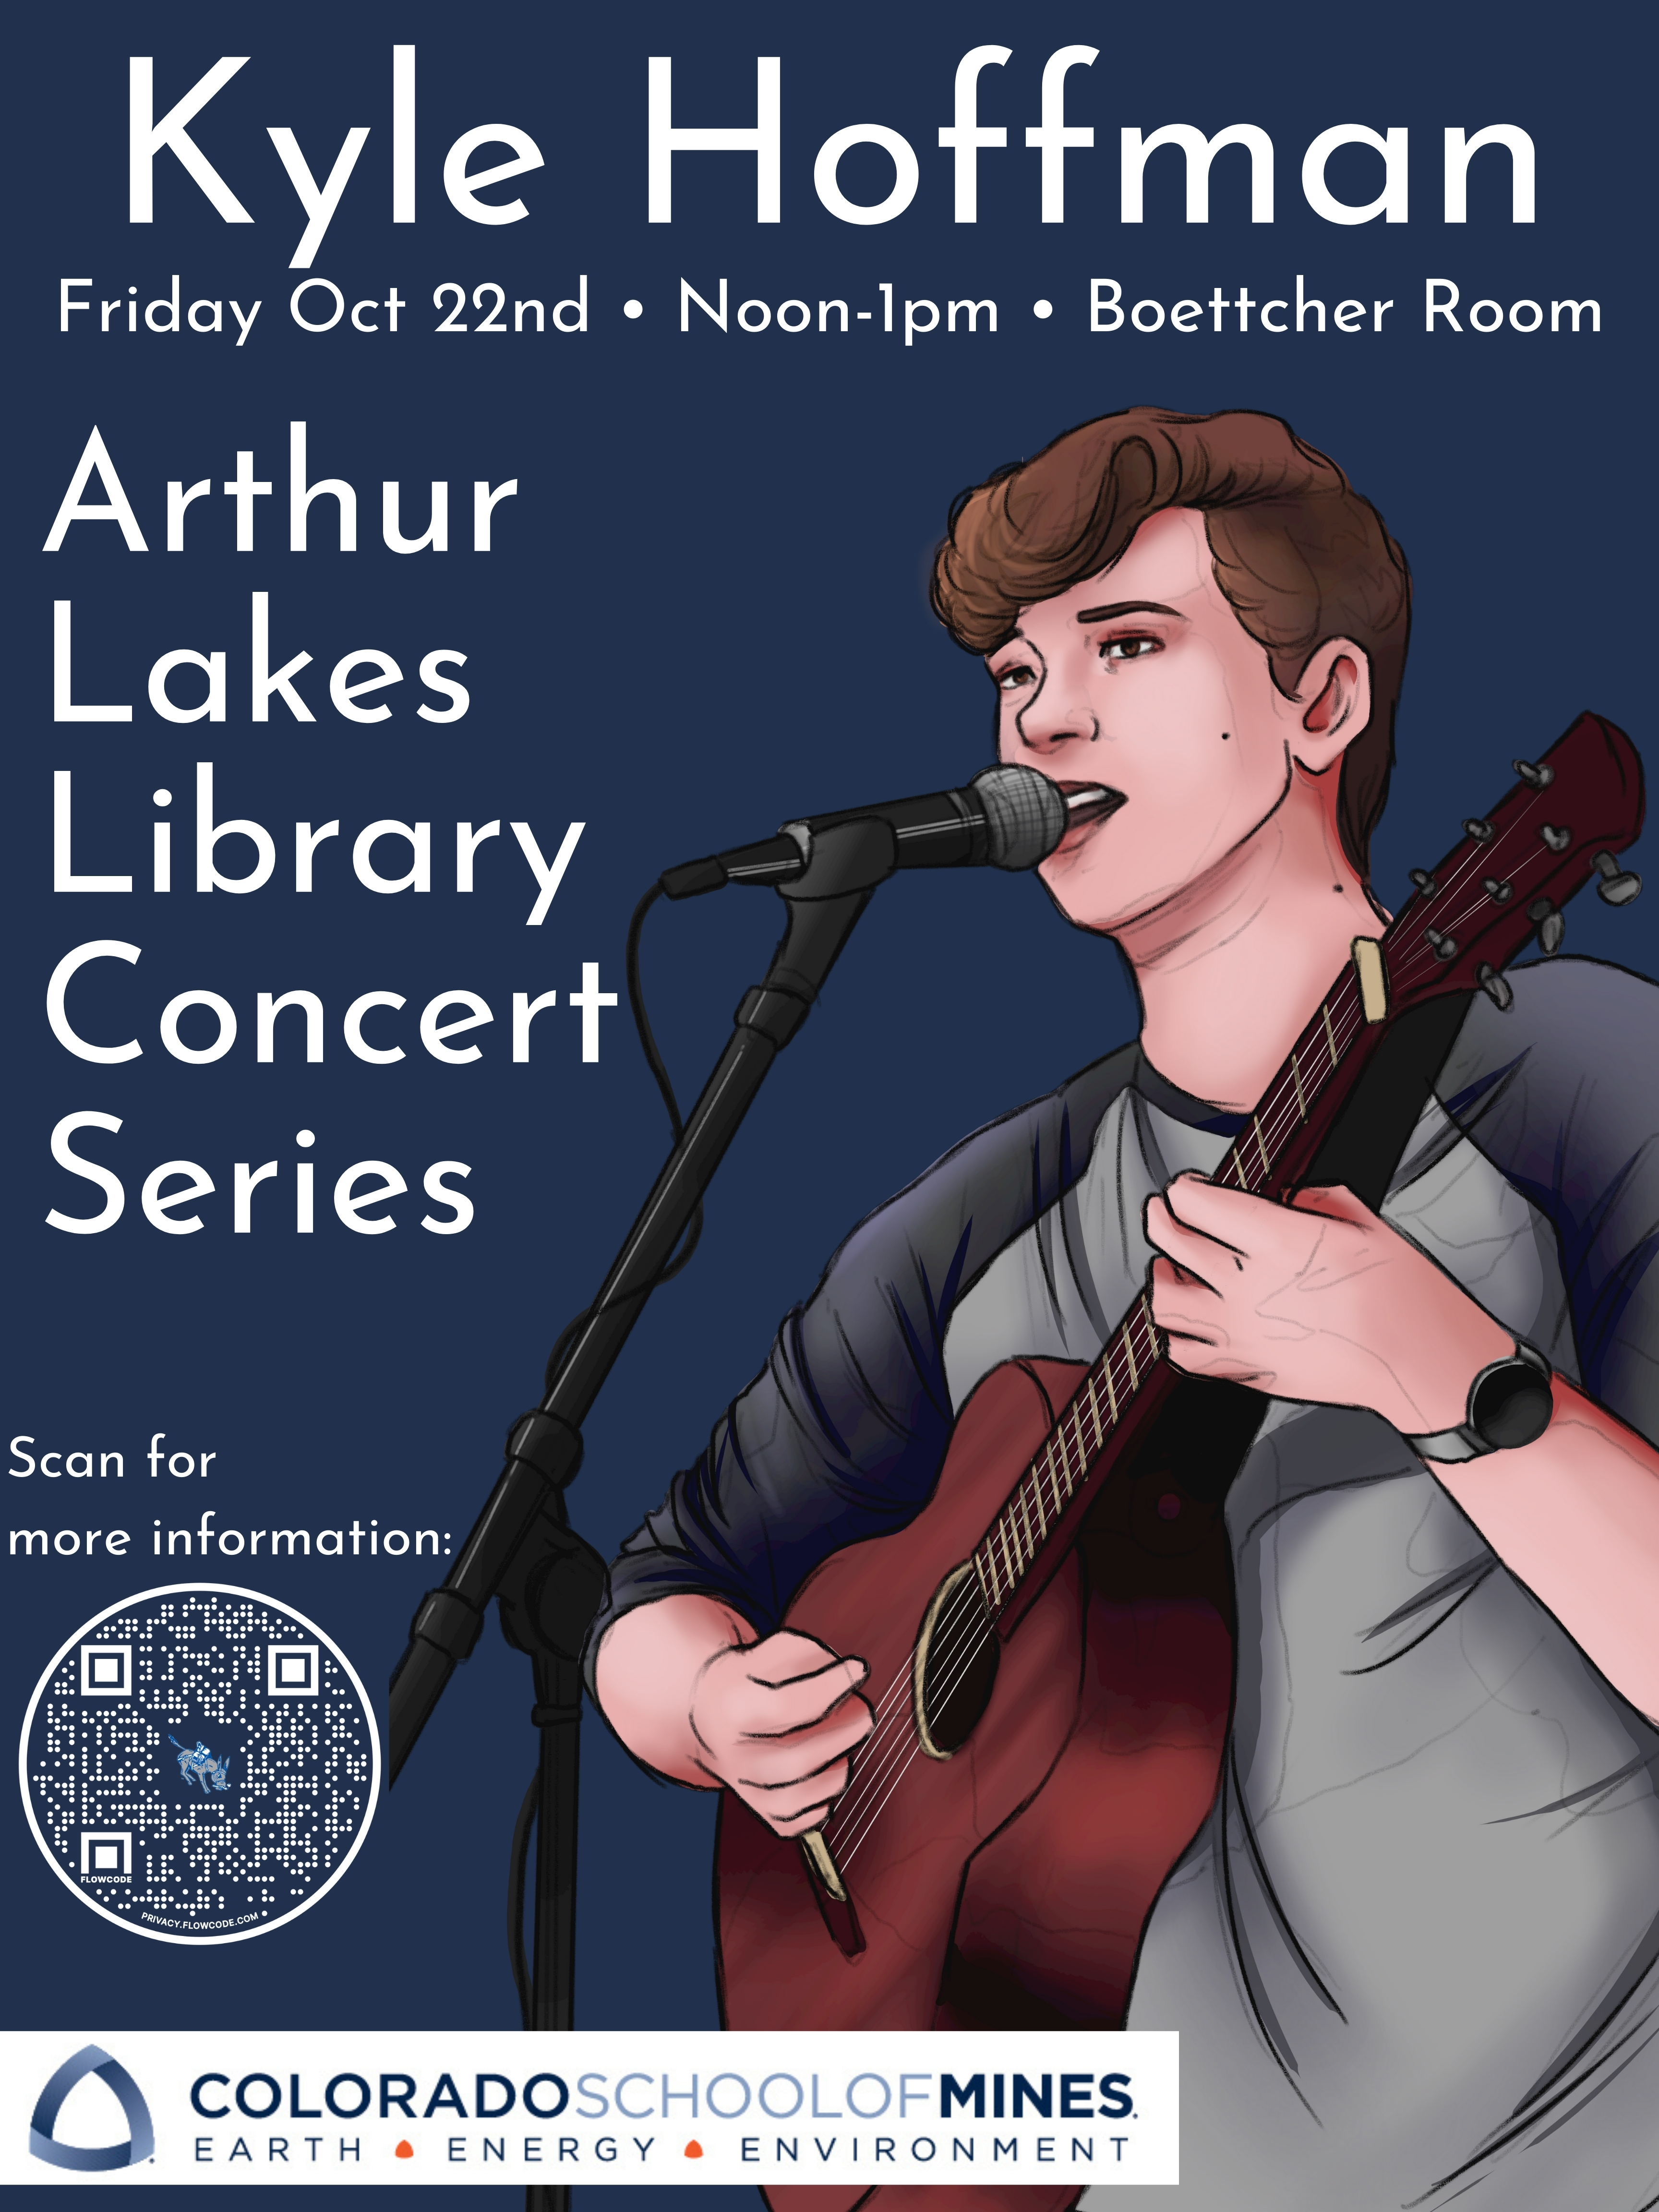 Library Concert Series featuring Kyle Hoffman